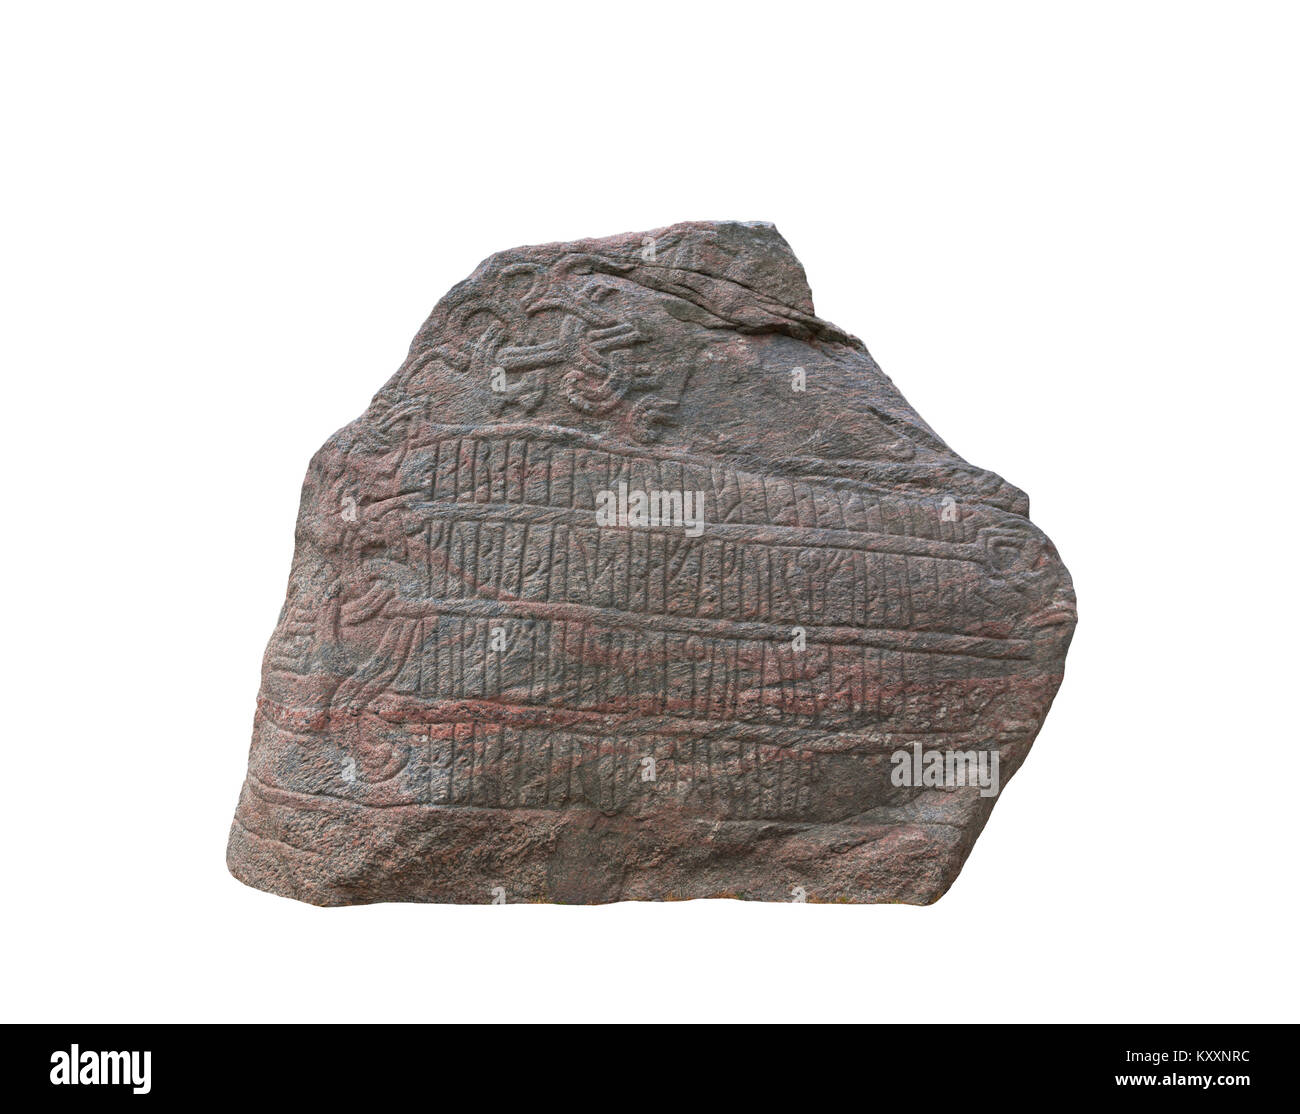 Isolated on white cutout of the large Jelling rune stone from the 10th century raised by King Harald Bluetooth in - Stock Image